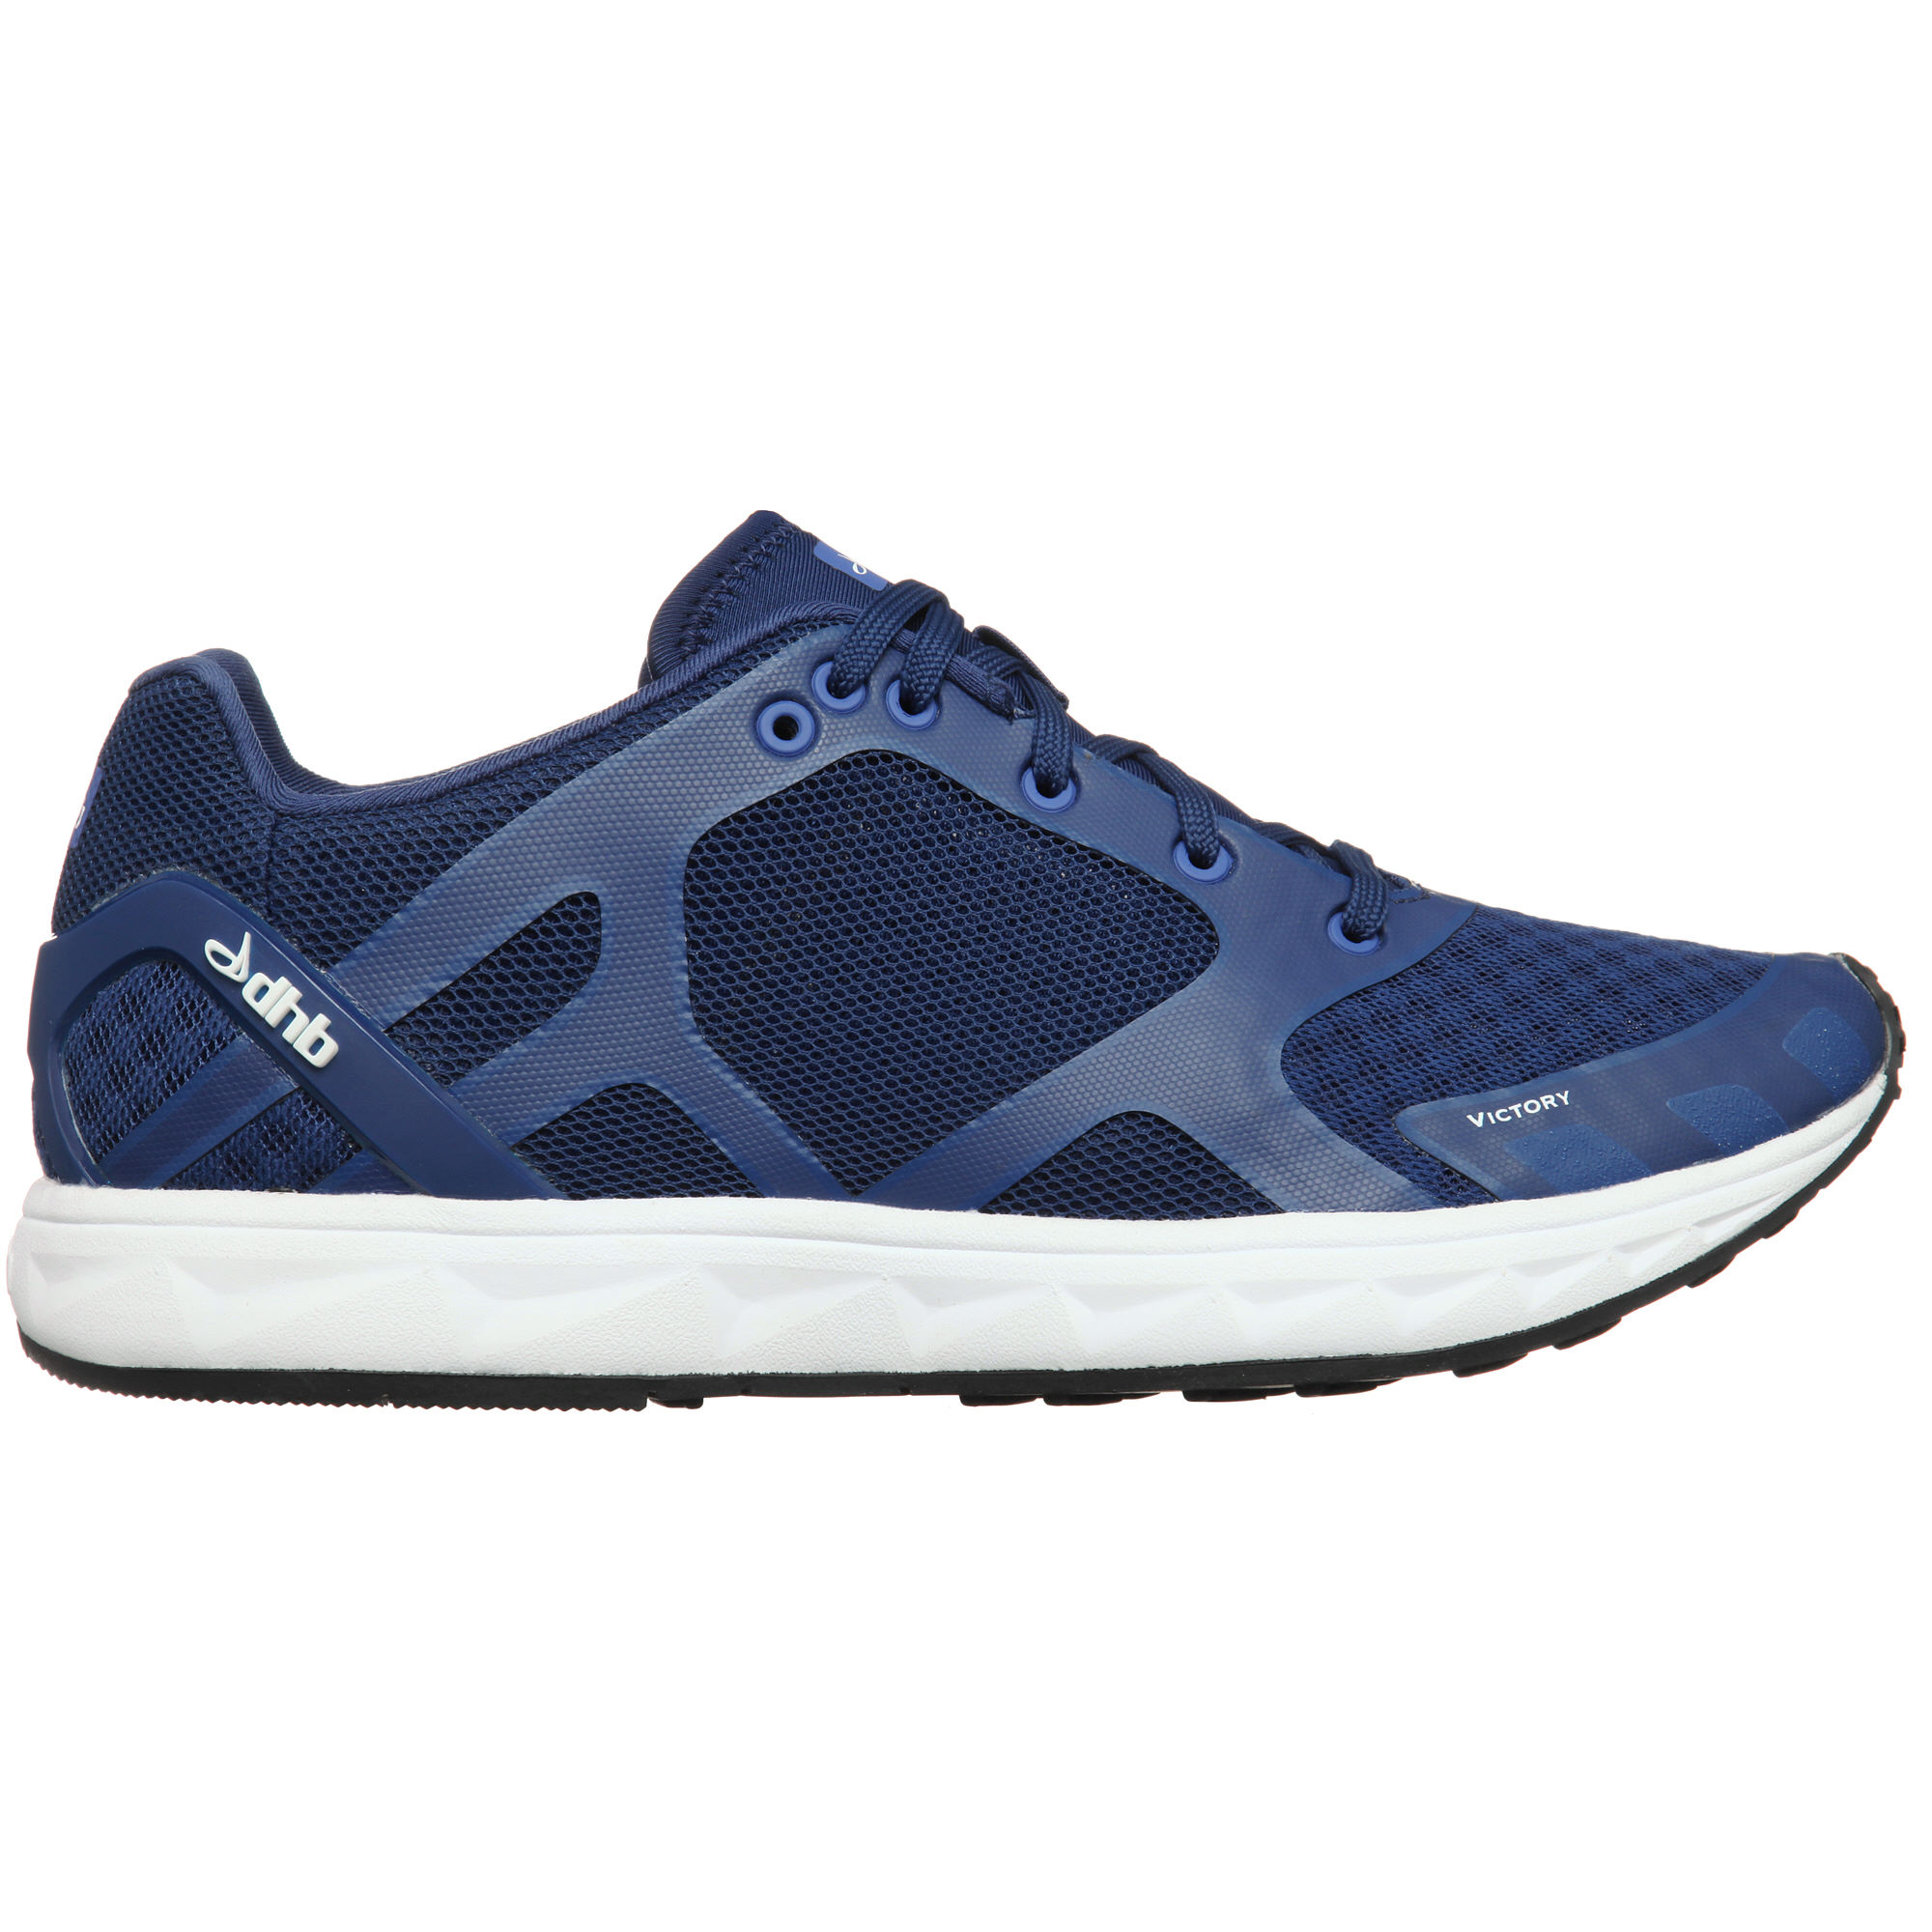 Dhb Running Shoes